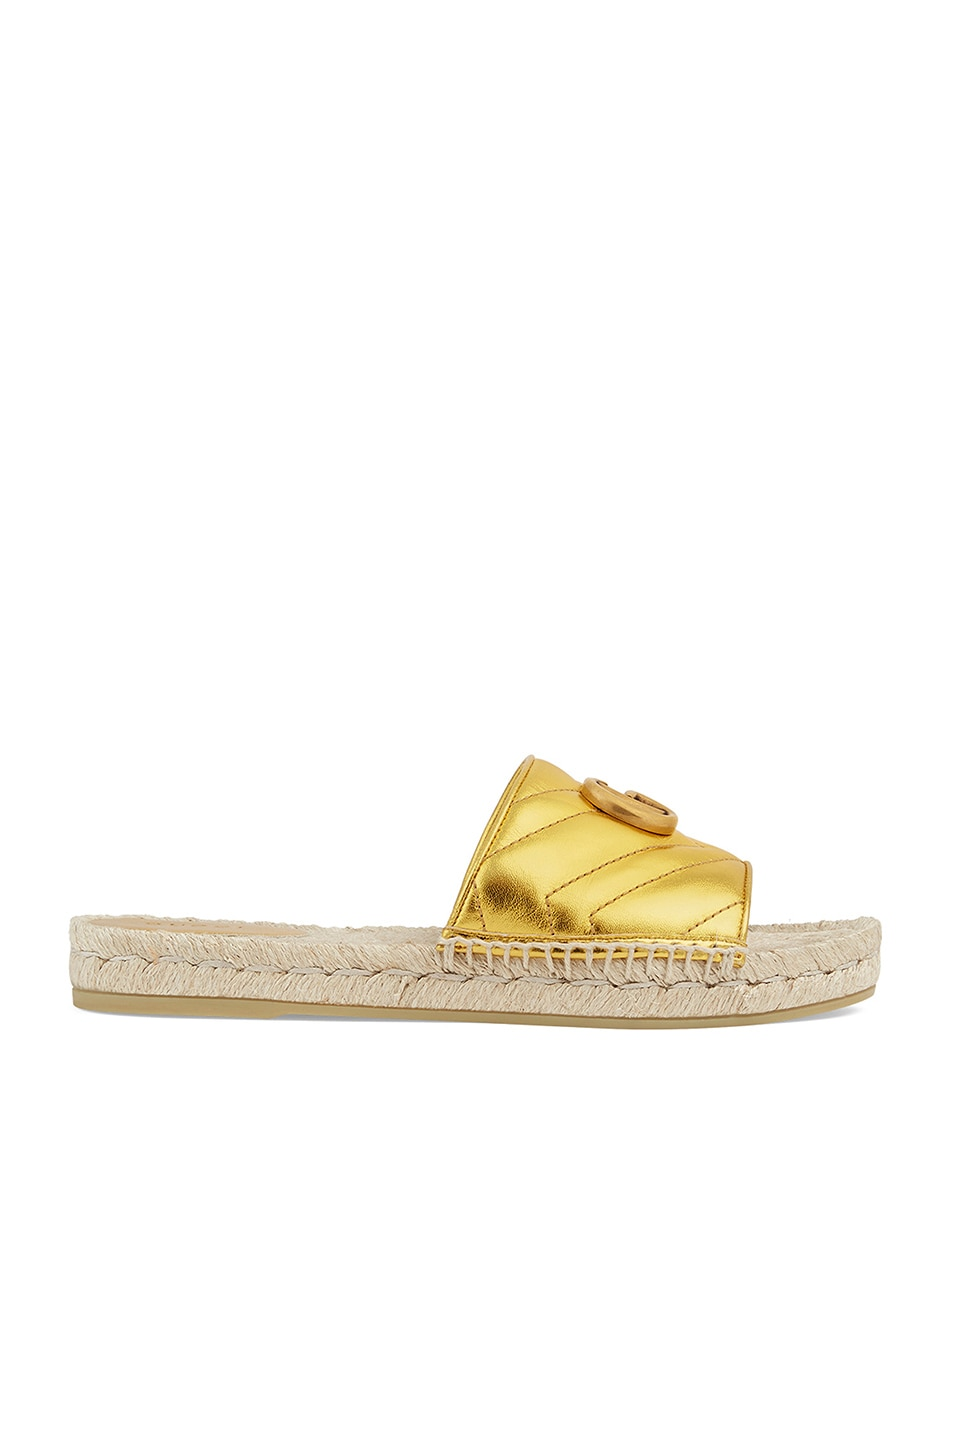 Image 1 of Gucci Pilar Sandals in Gold